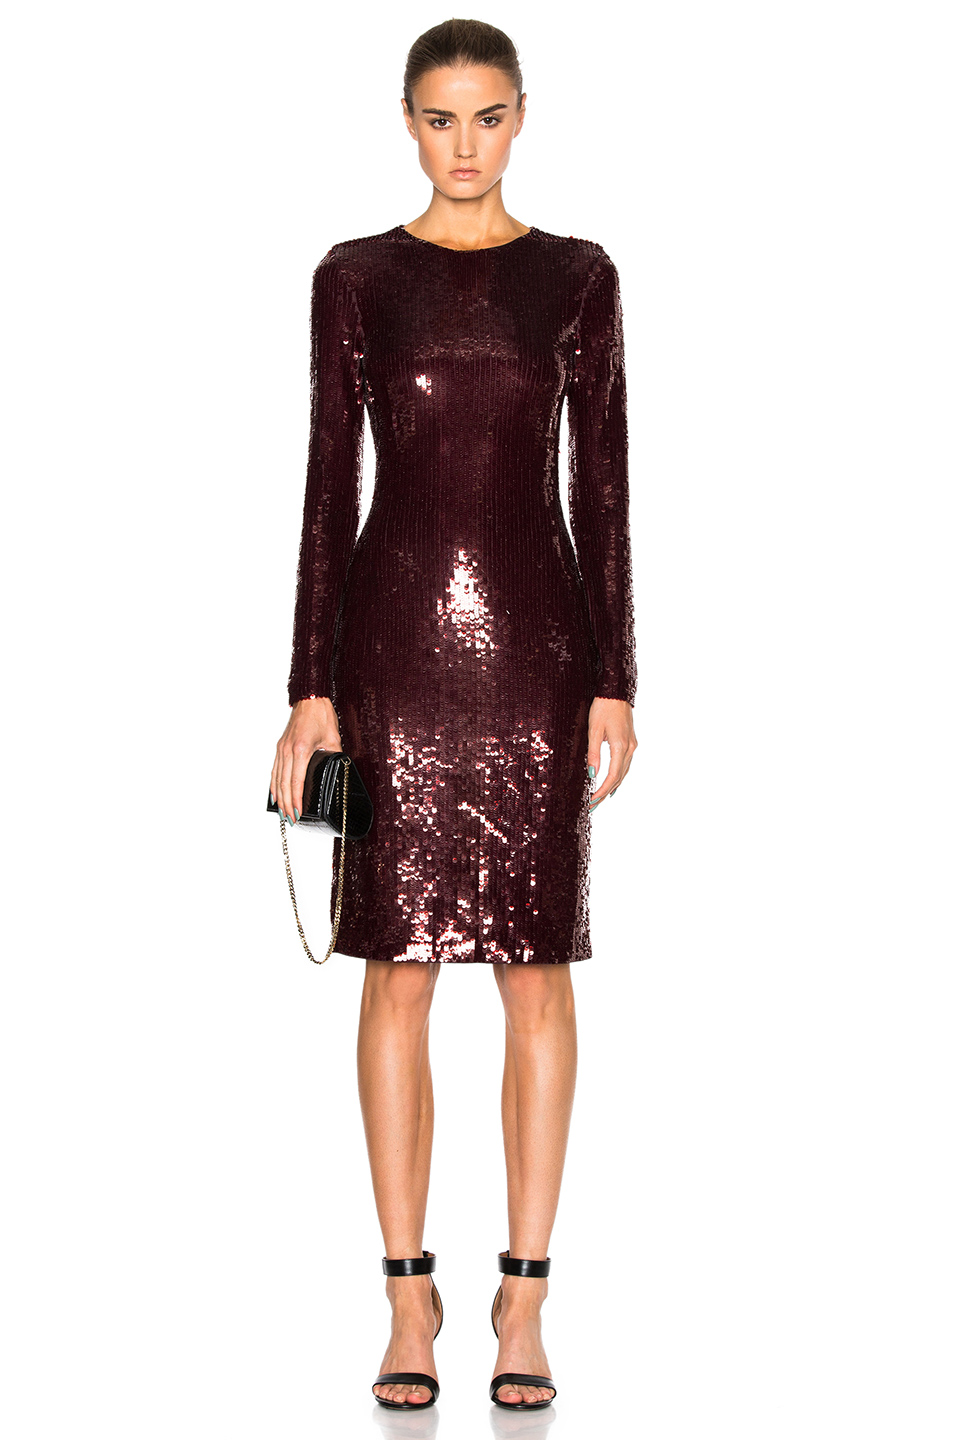 Givenchy Sequin Dress in Red,Purple